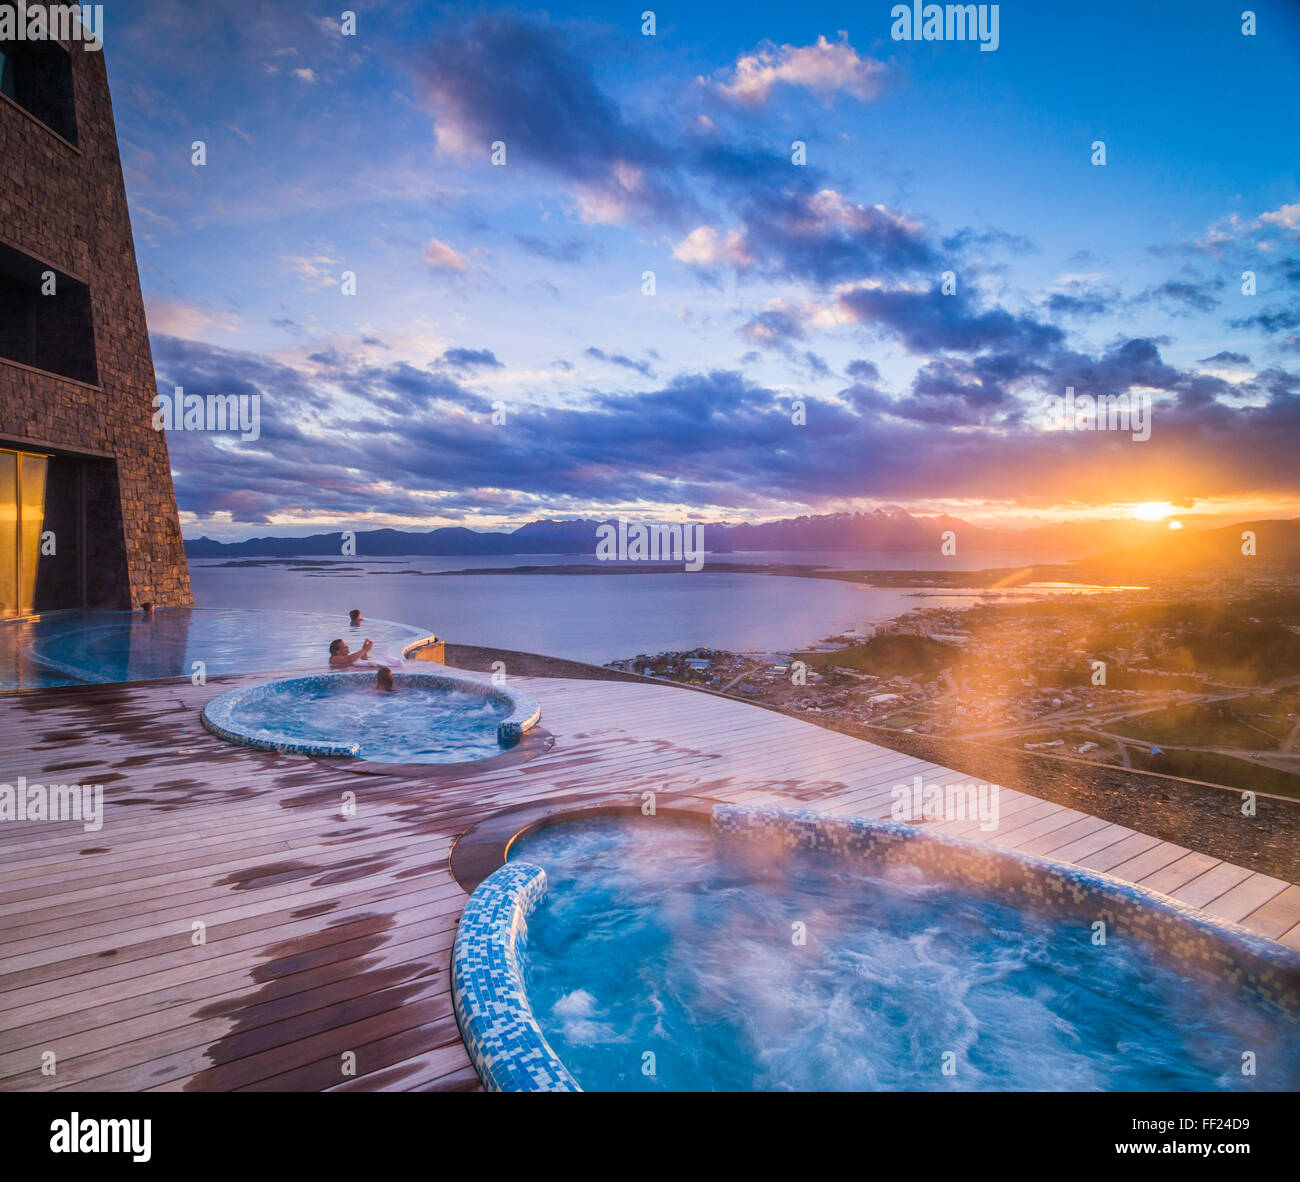 Outdoor swimming pooRM and jacuzzi, HoteRM Arakur Ushuaia Resort and Spa, Ushuaia, Tierra deRM Fuego, Patagonia, - Stock Image